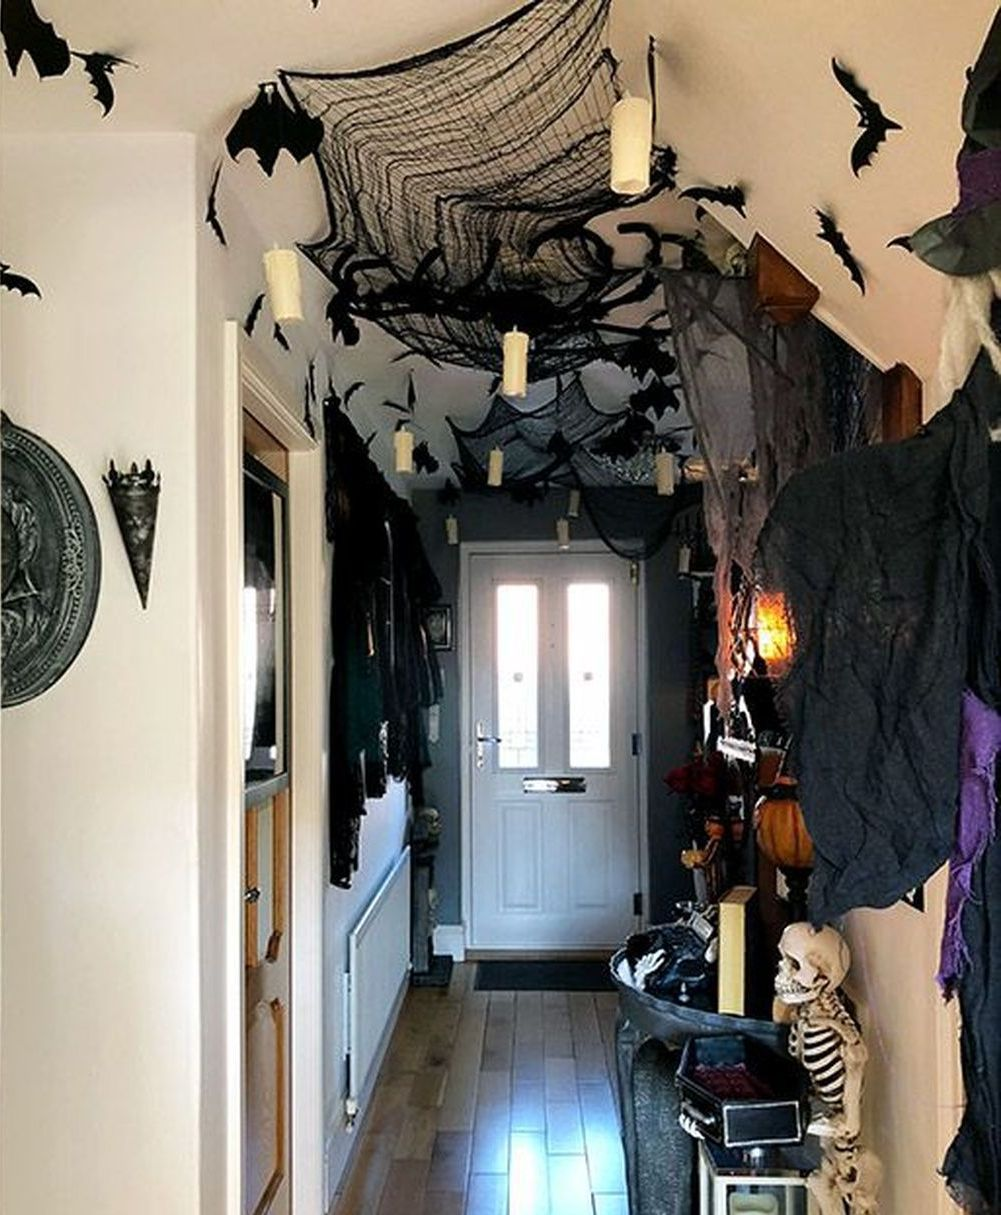 62 Stunning Halloween Decorations Indoor Ideas (With